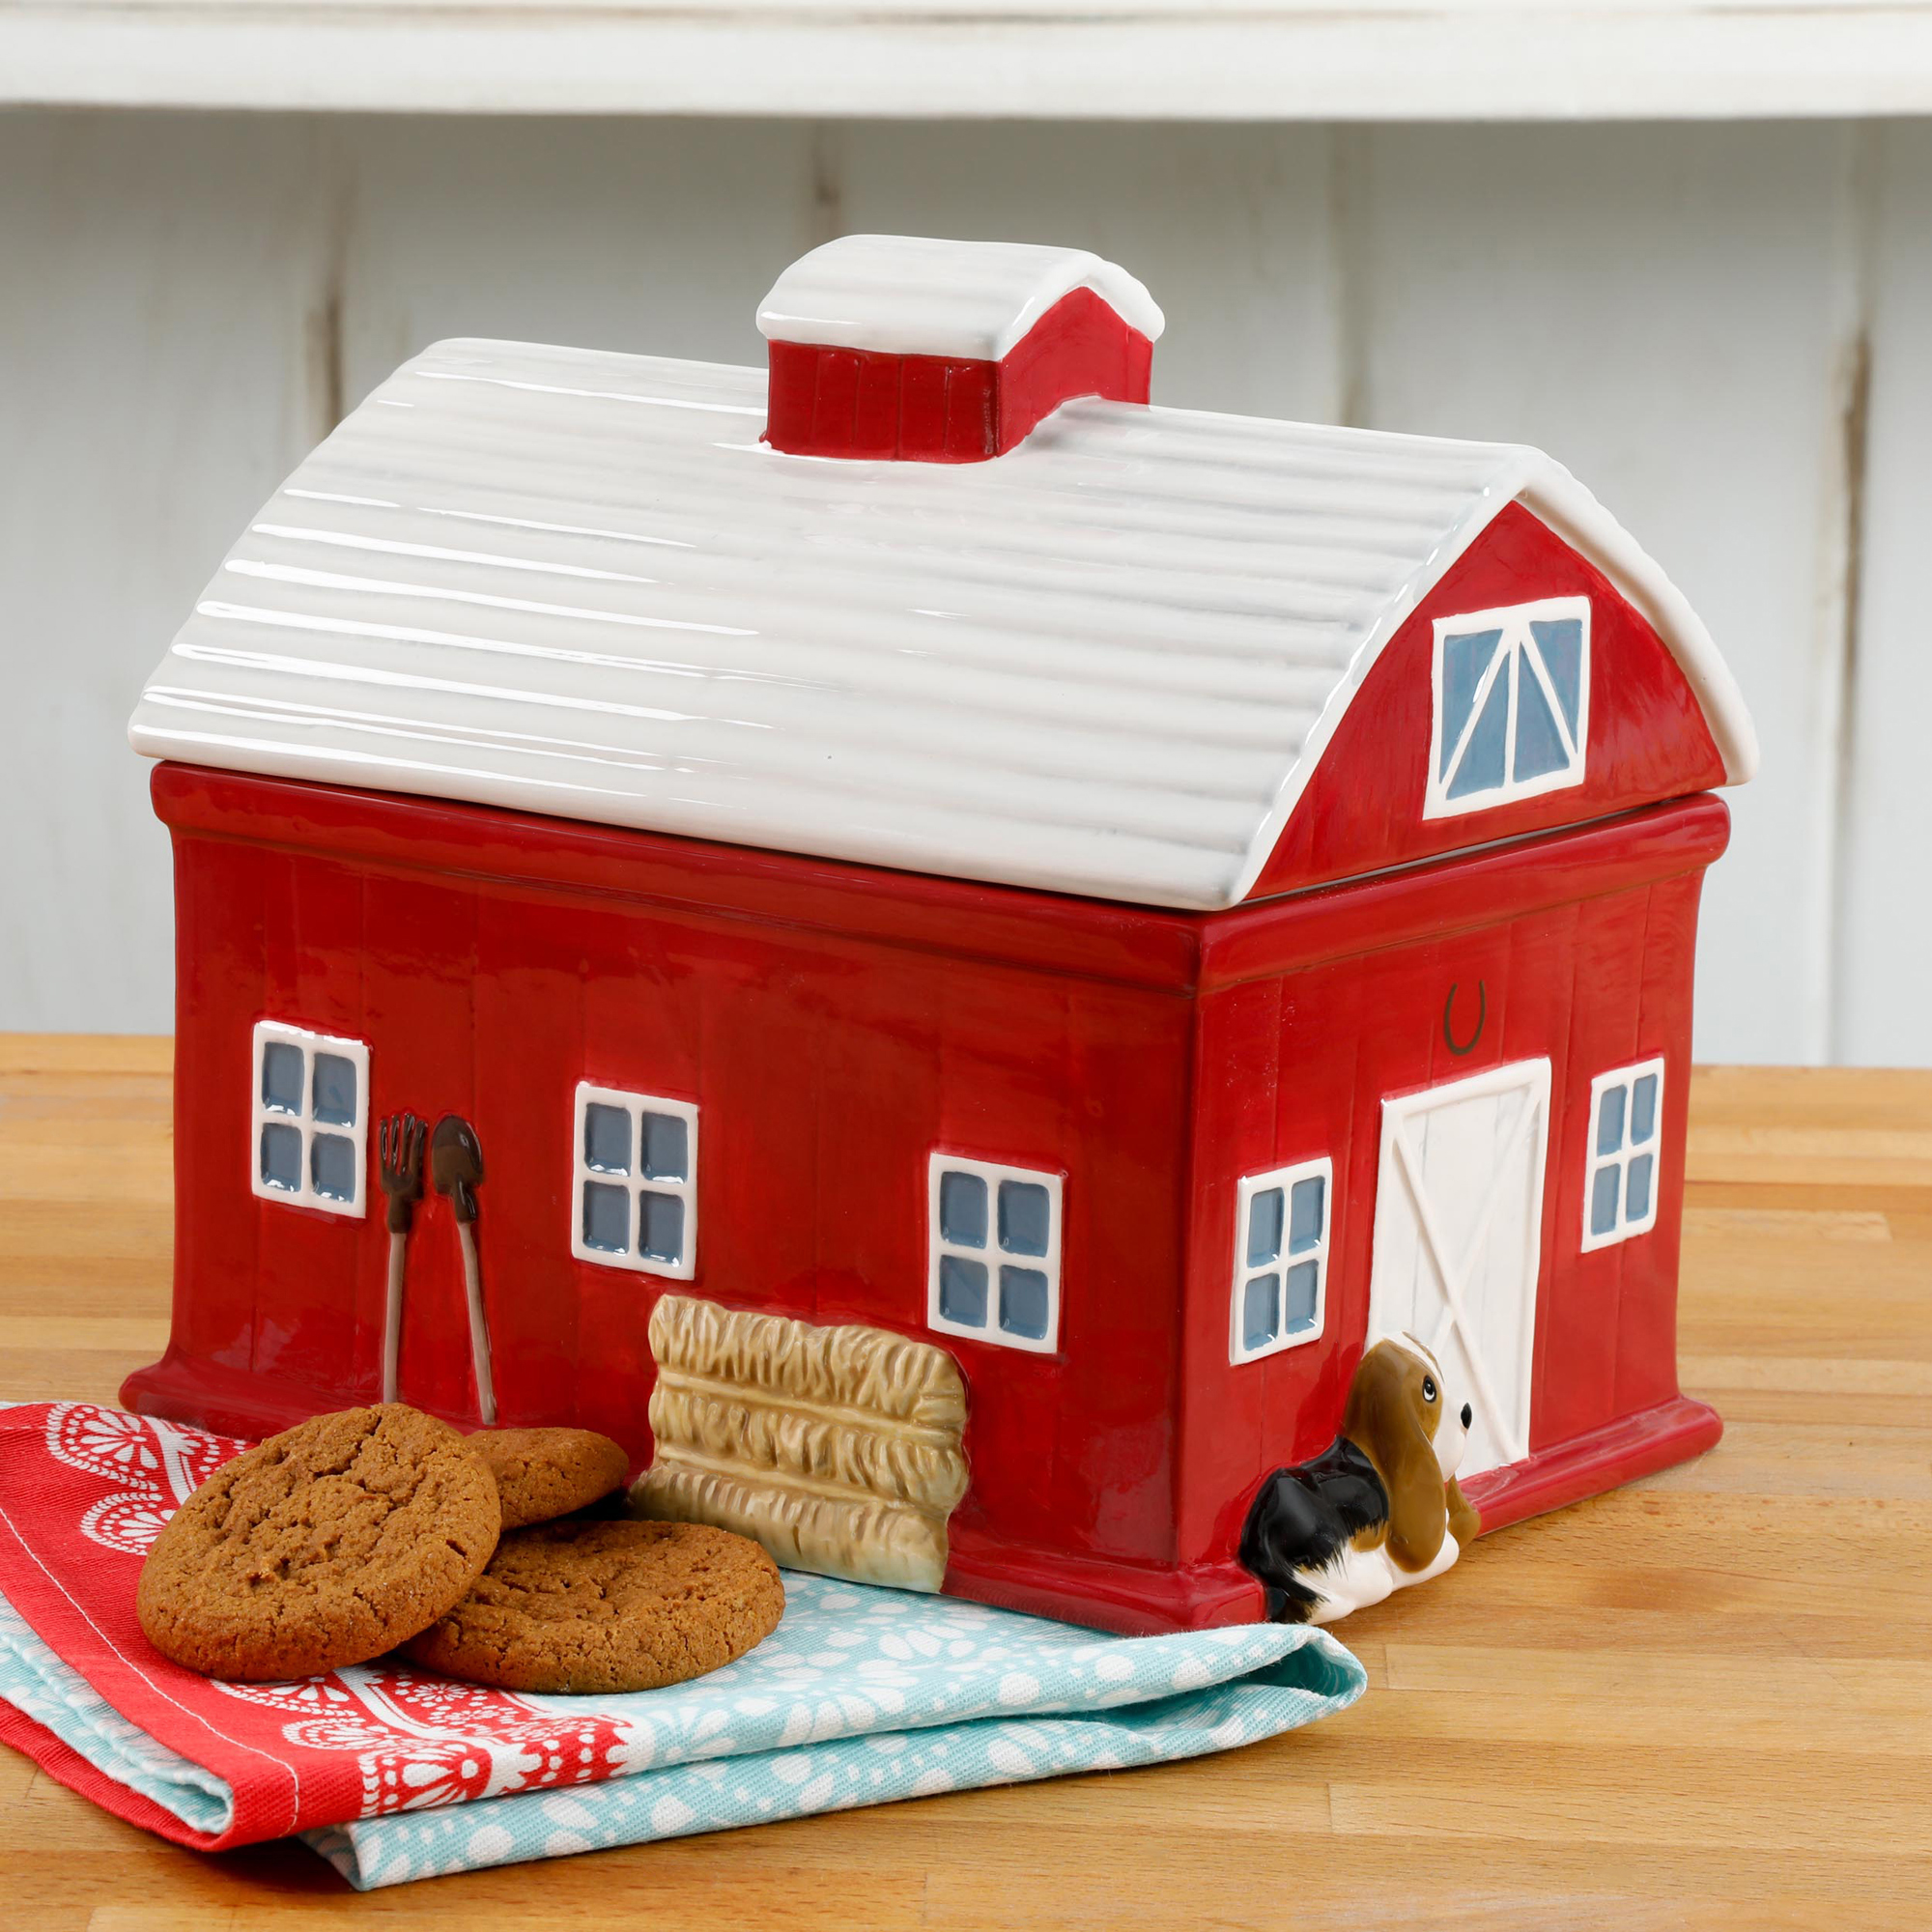 The Pioneer Woman Barn 7.9 Inch Cookie Jar